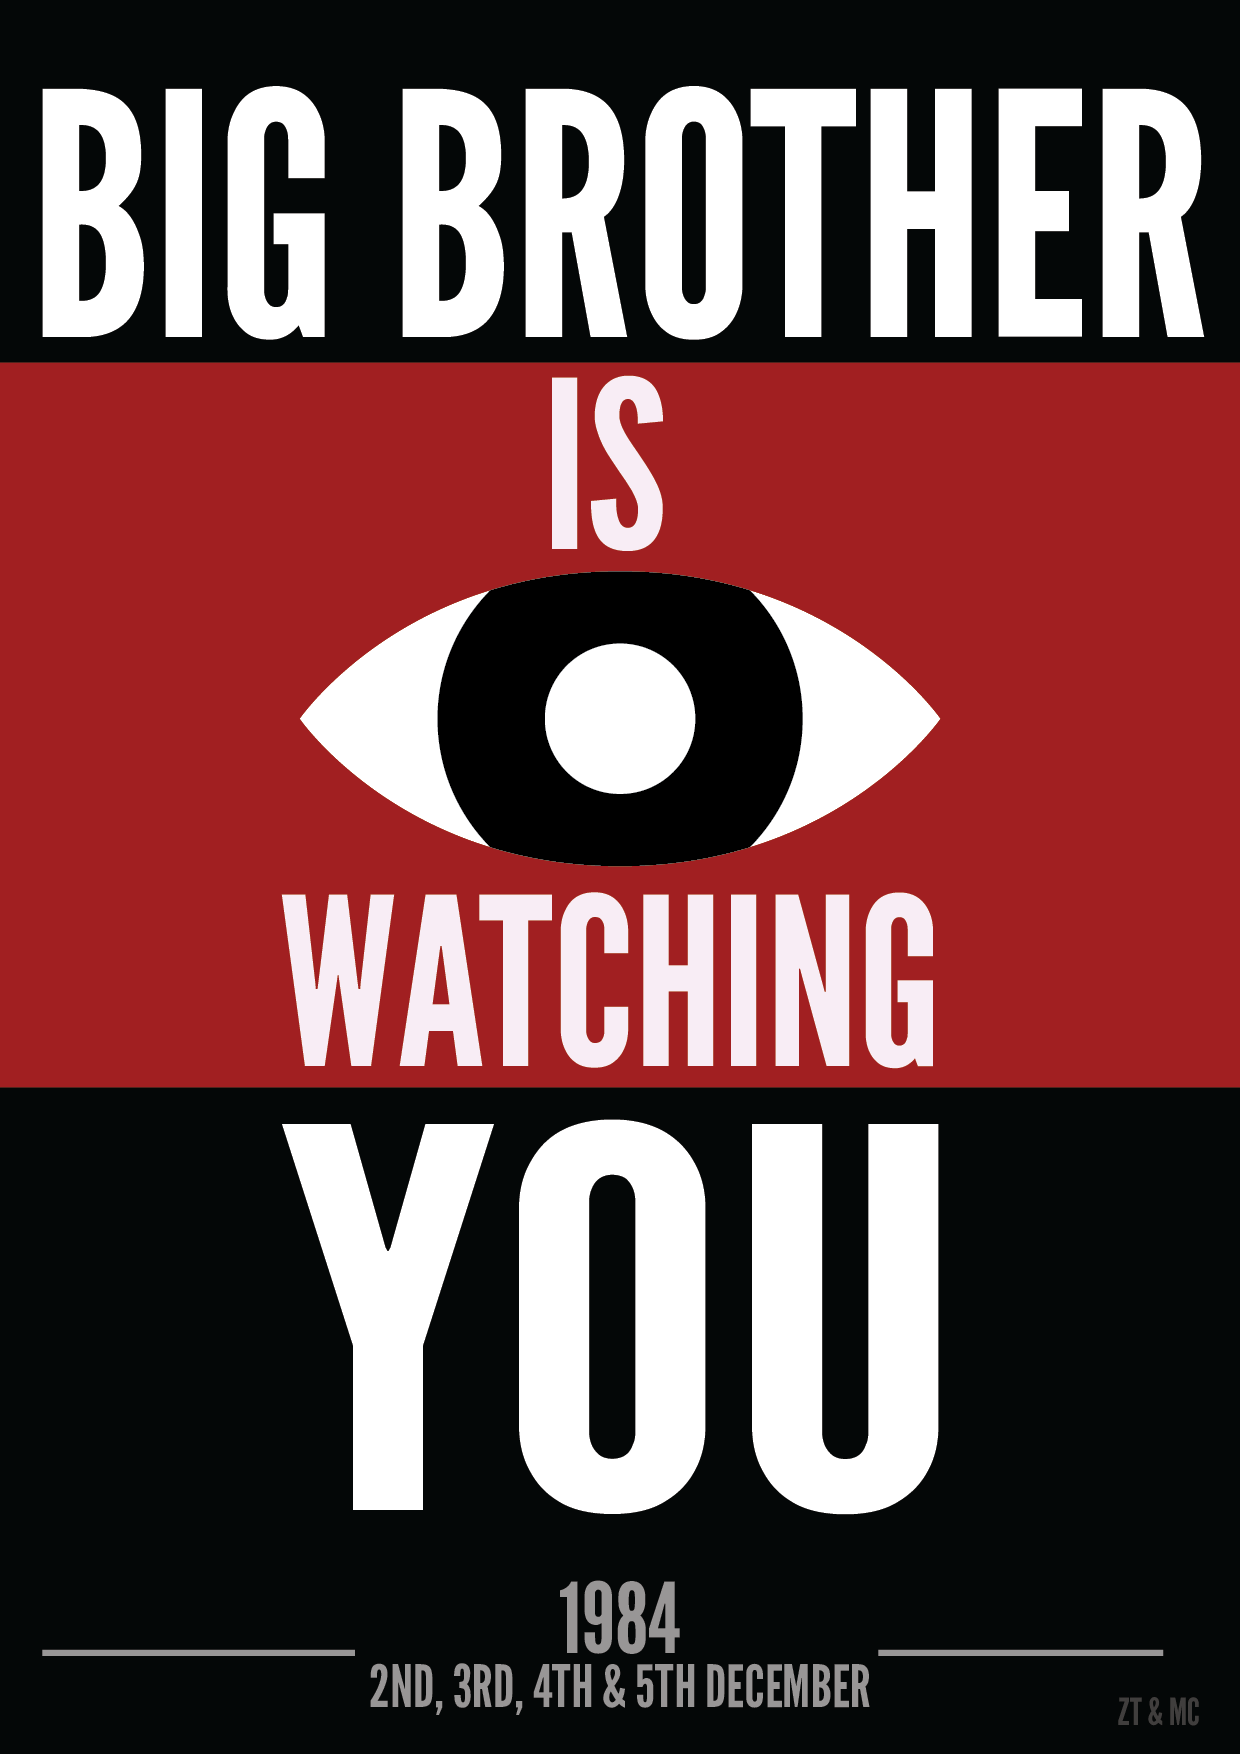 Swypeout 1984 Quotes About Big Brother